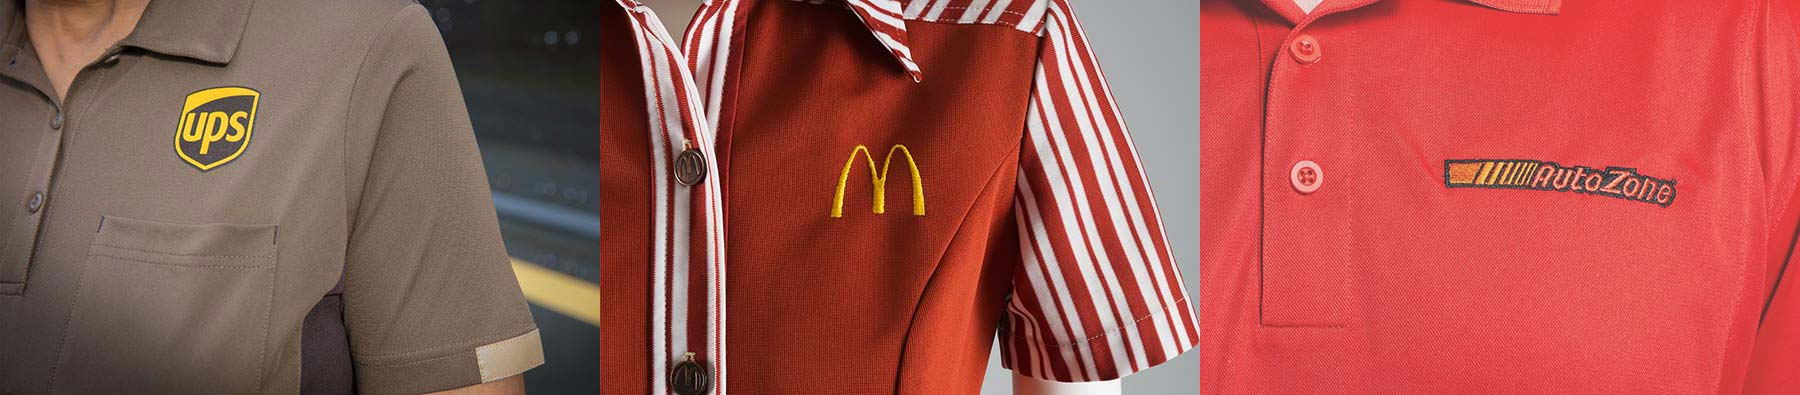 Closeup of three well-known brands with their logos embroidered their uniform shirts: UPS, McDonald's and AutoZone.